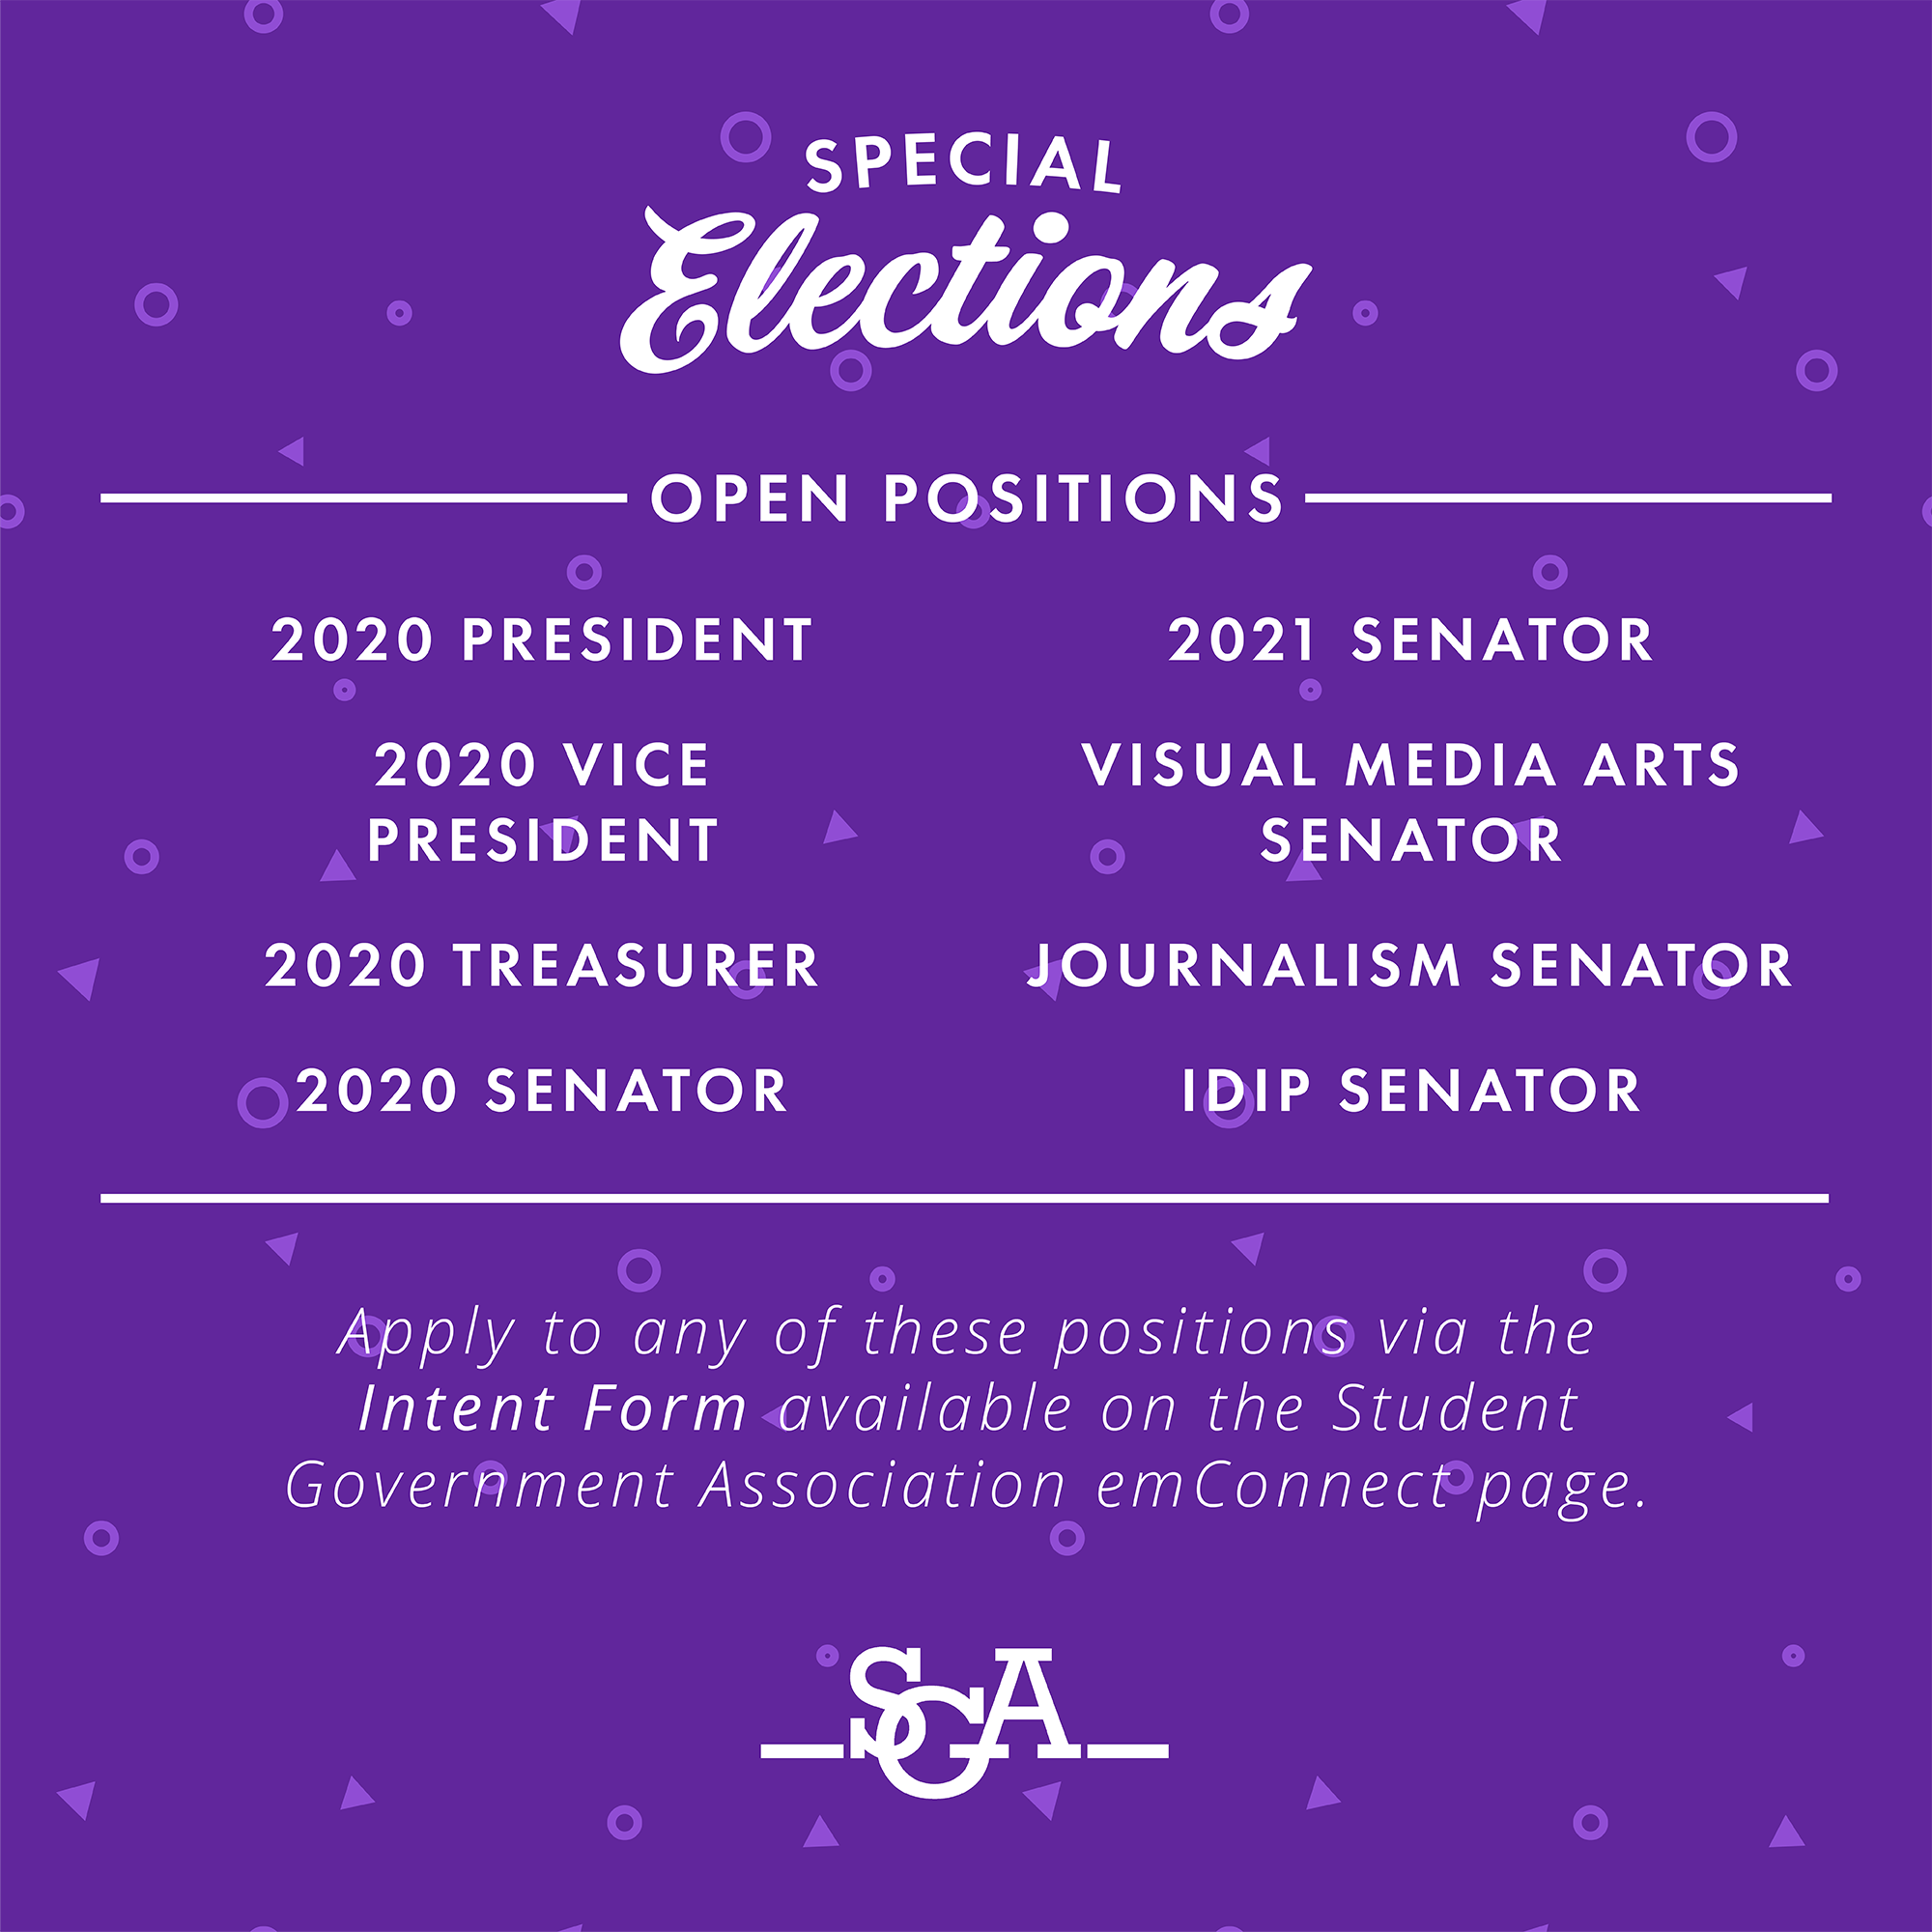 specialelections3.png